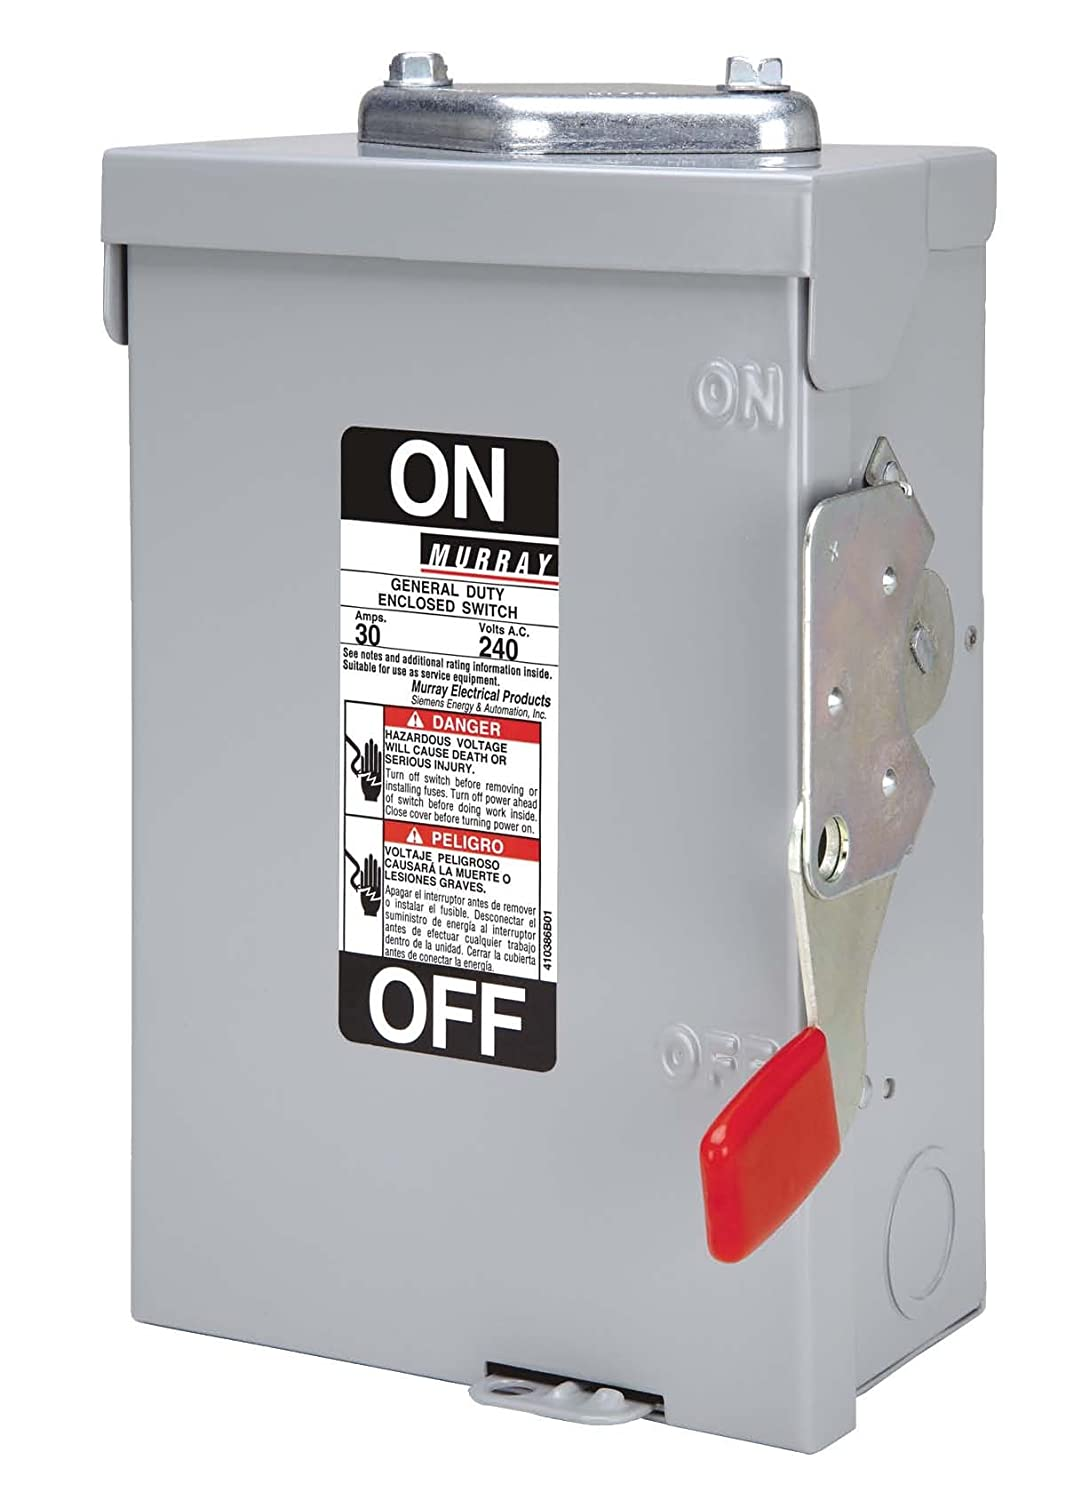 MURRAY GHN321NWU NEW ES 240-Volt, 2 Pole, FUS Outdoor Rated General ...